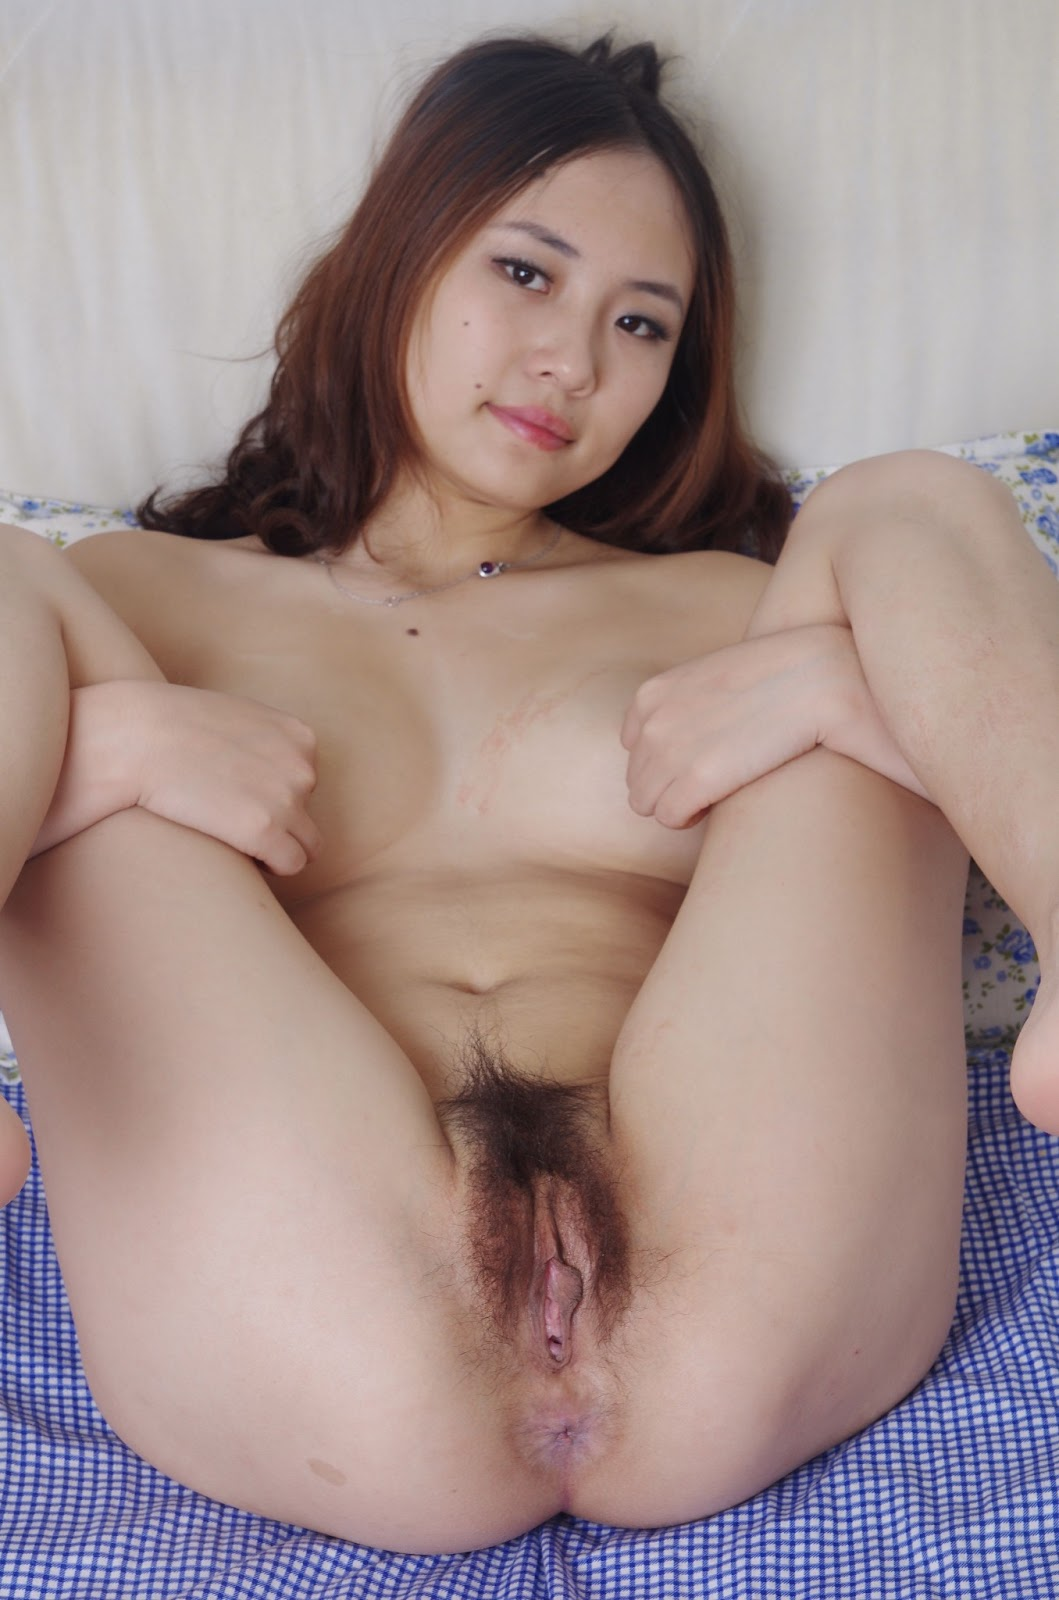 Naked Asian Women Japanese Girls